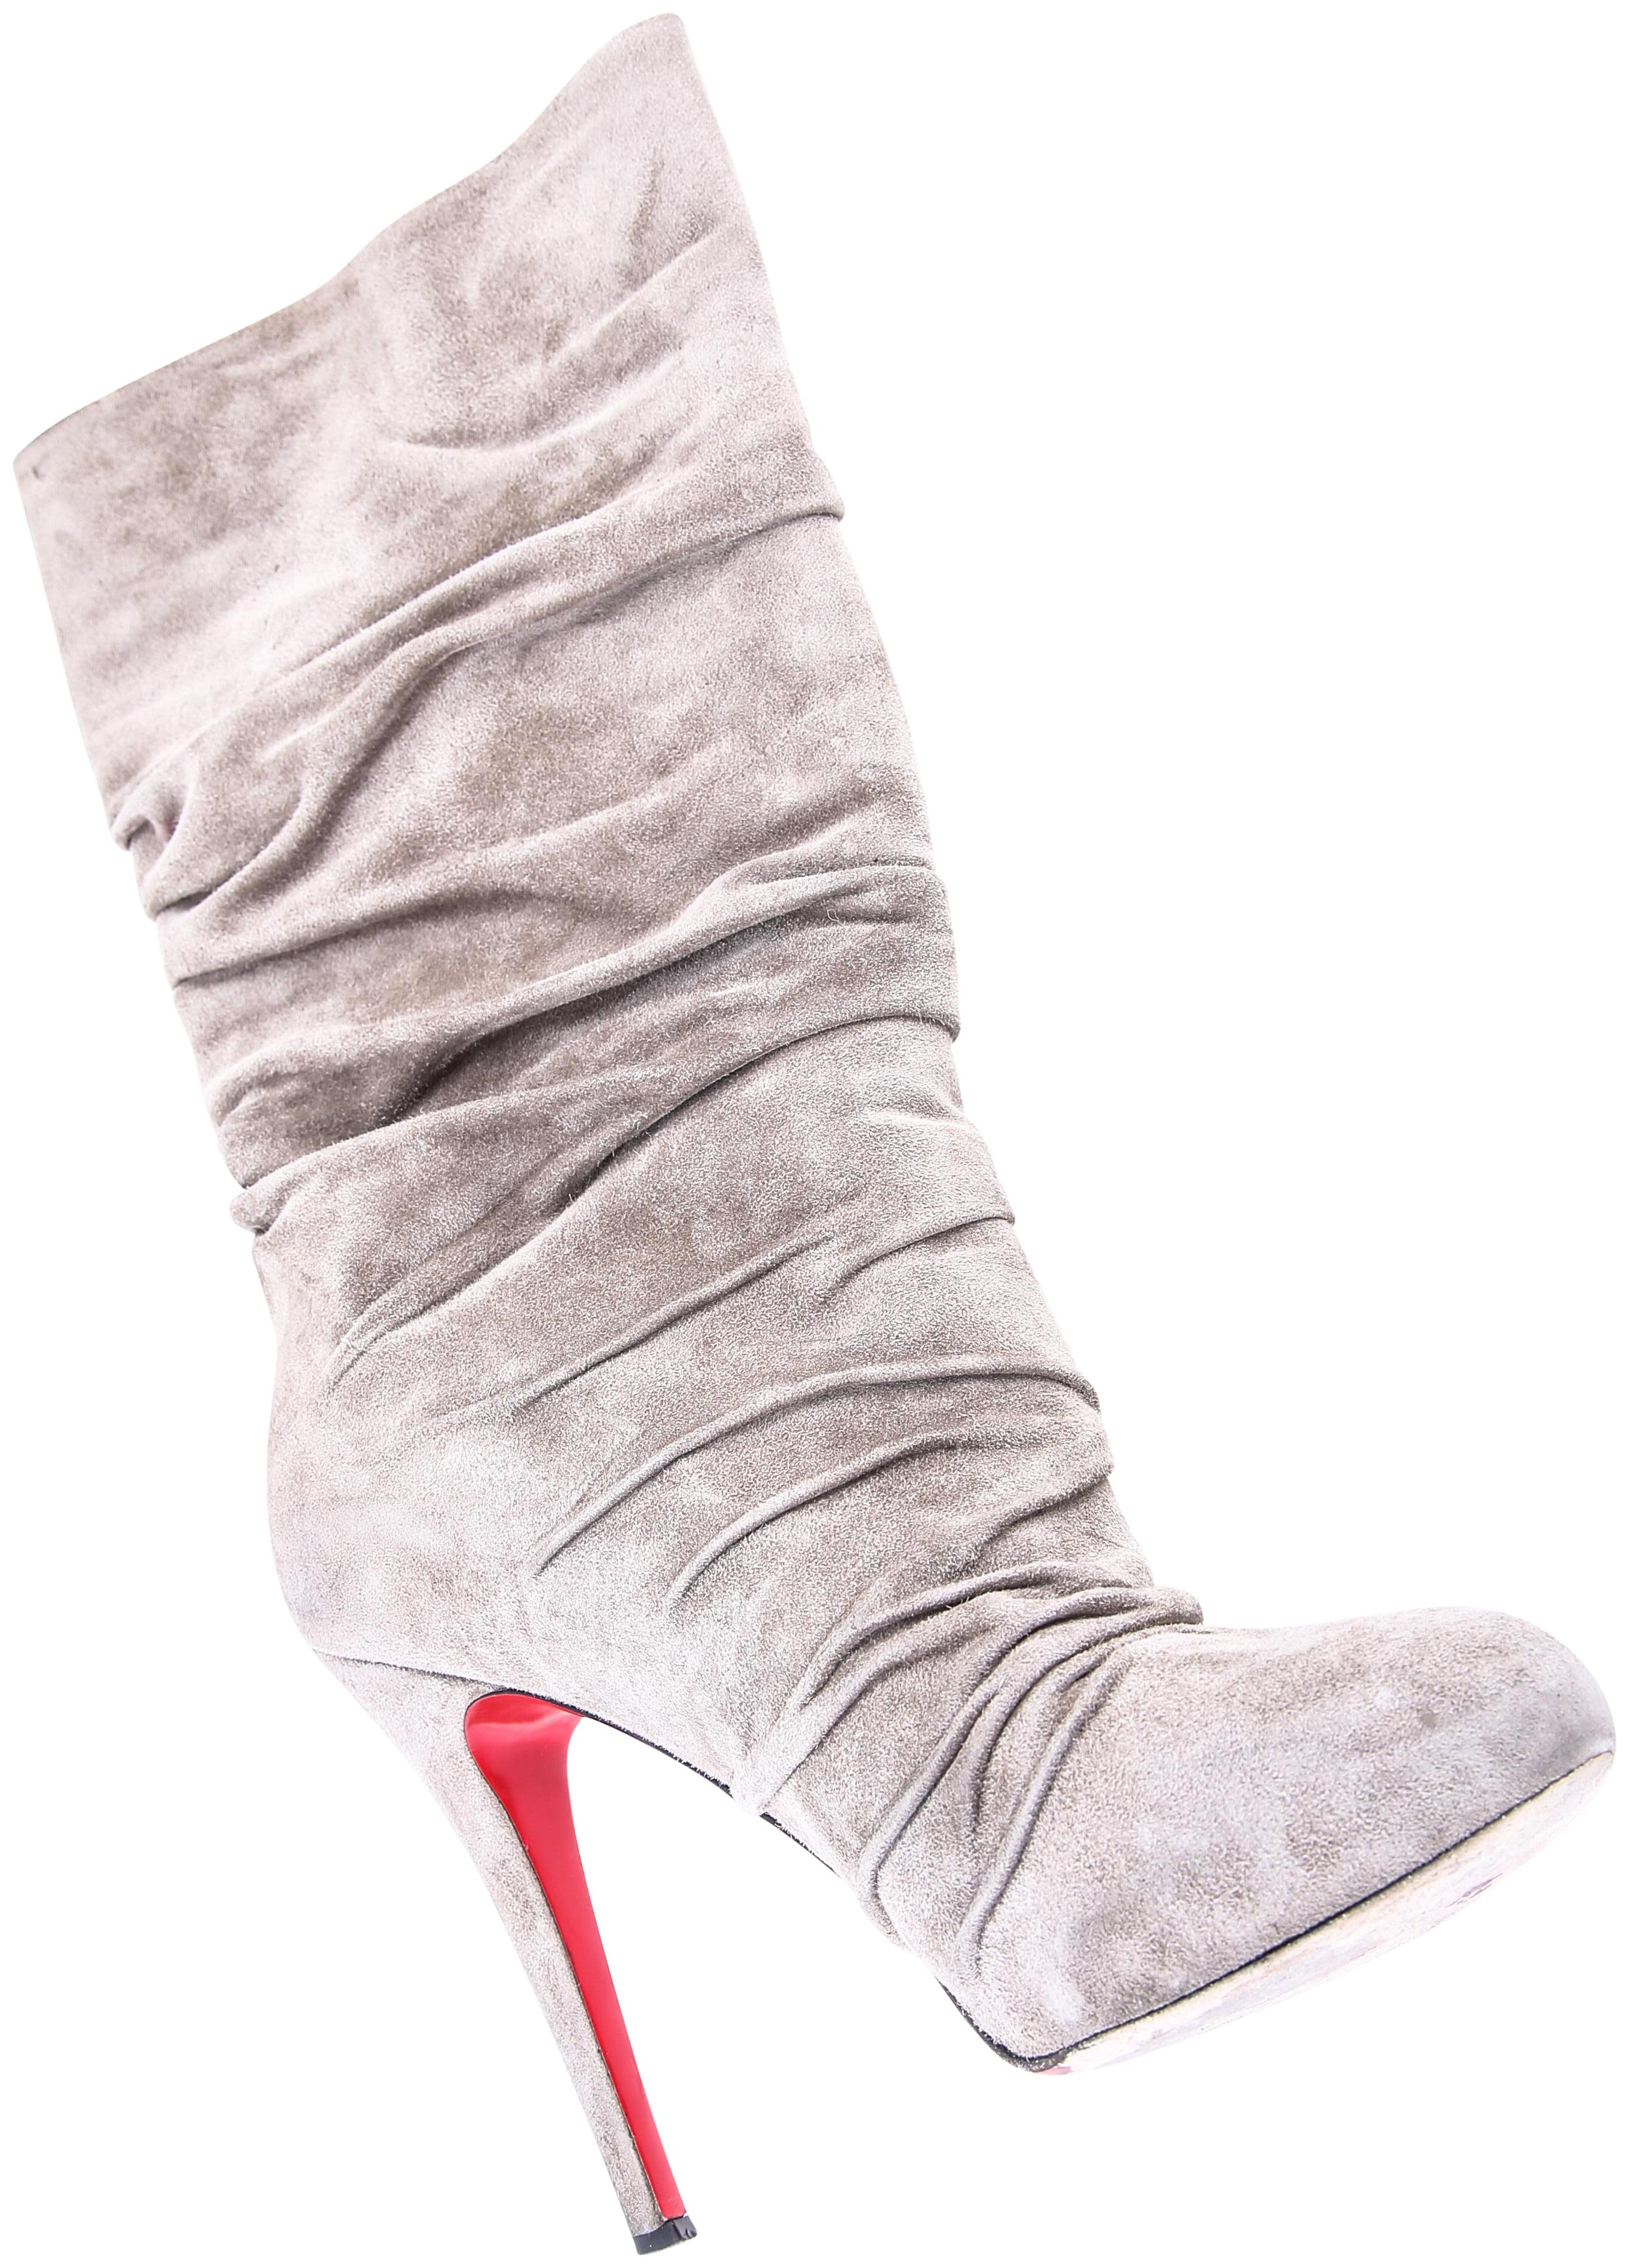 huge discount 159bc a42ad discount code for louboutin boots grey couch fd118 f8c30